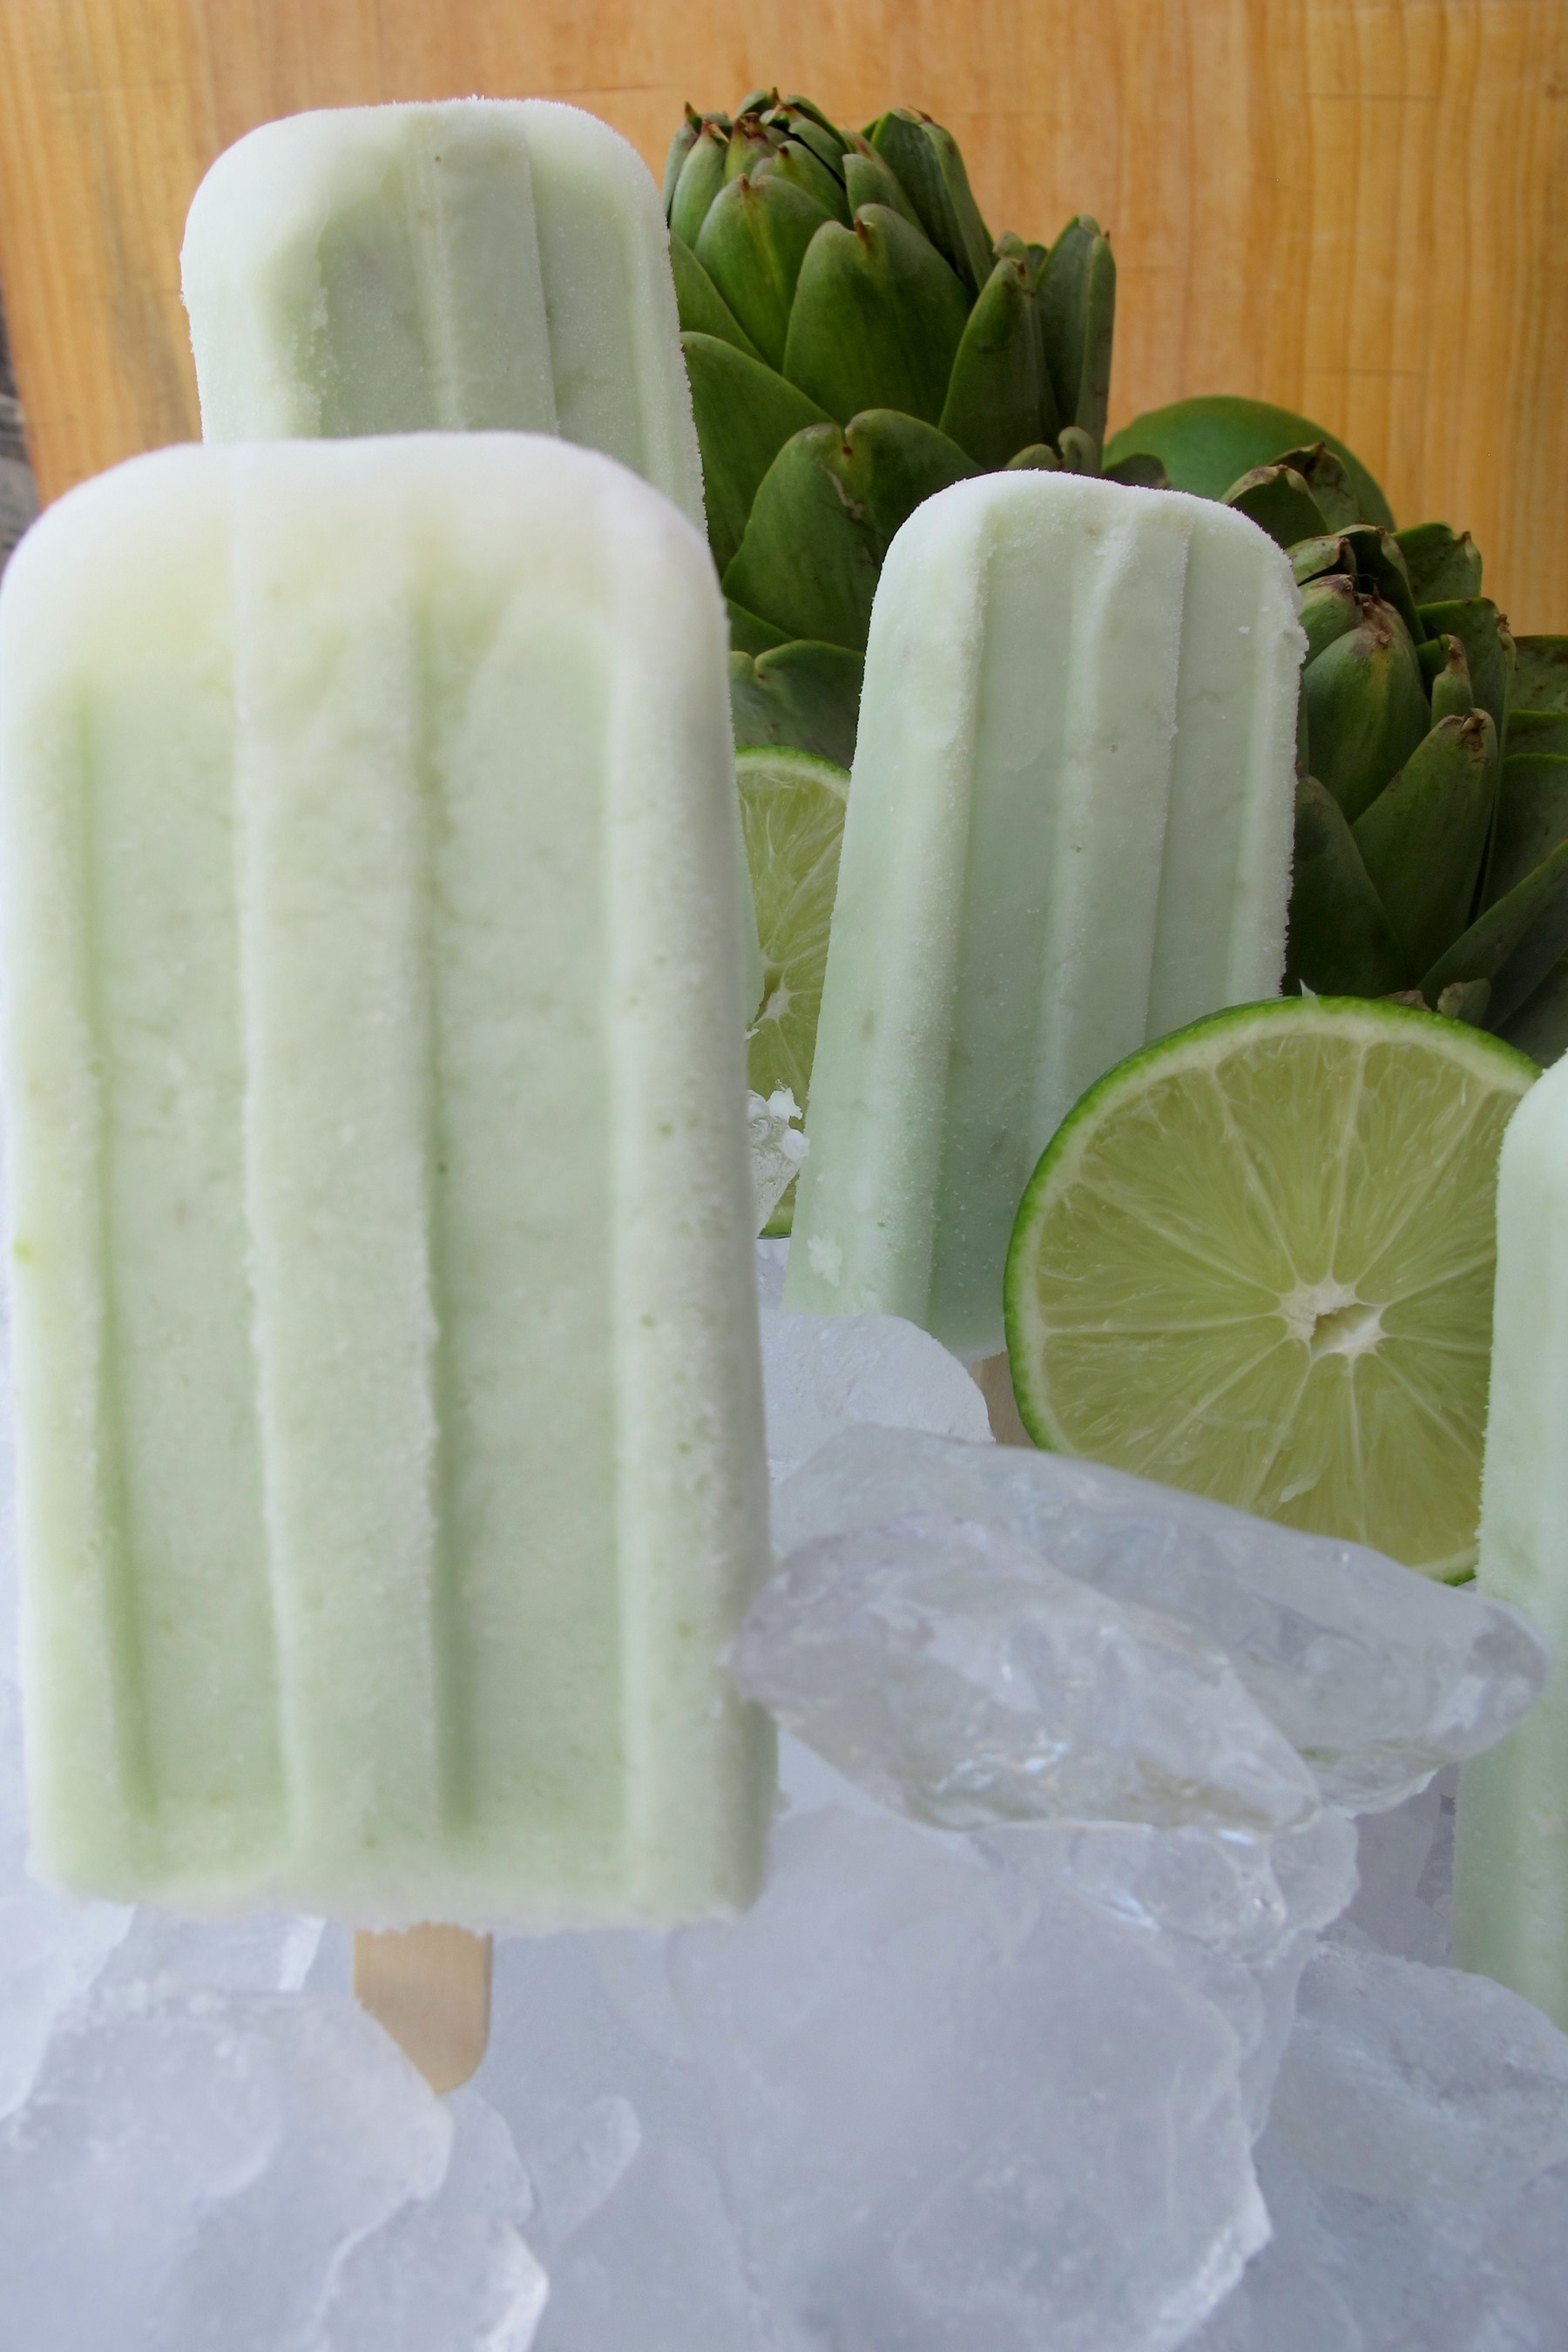 Lime ice pops with artichoke